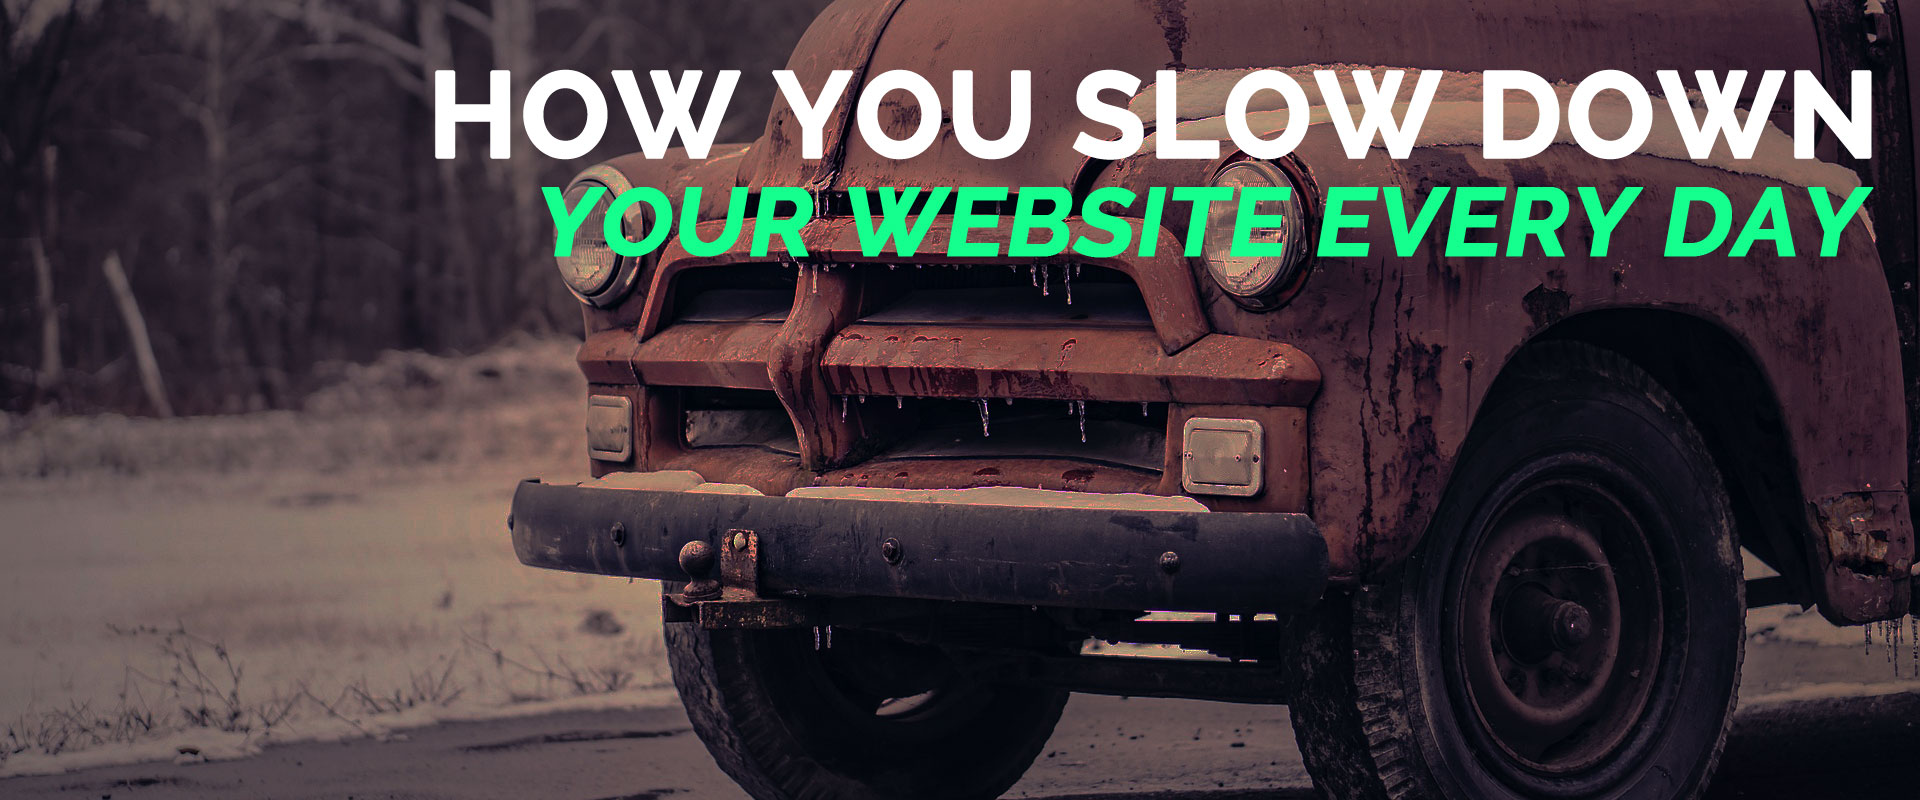 How you slow down your website